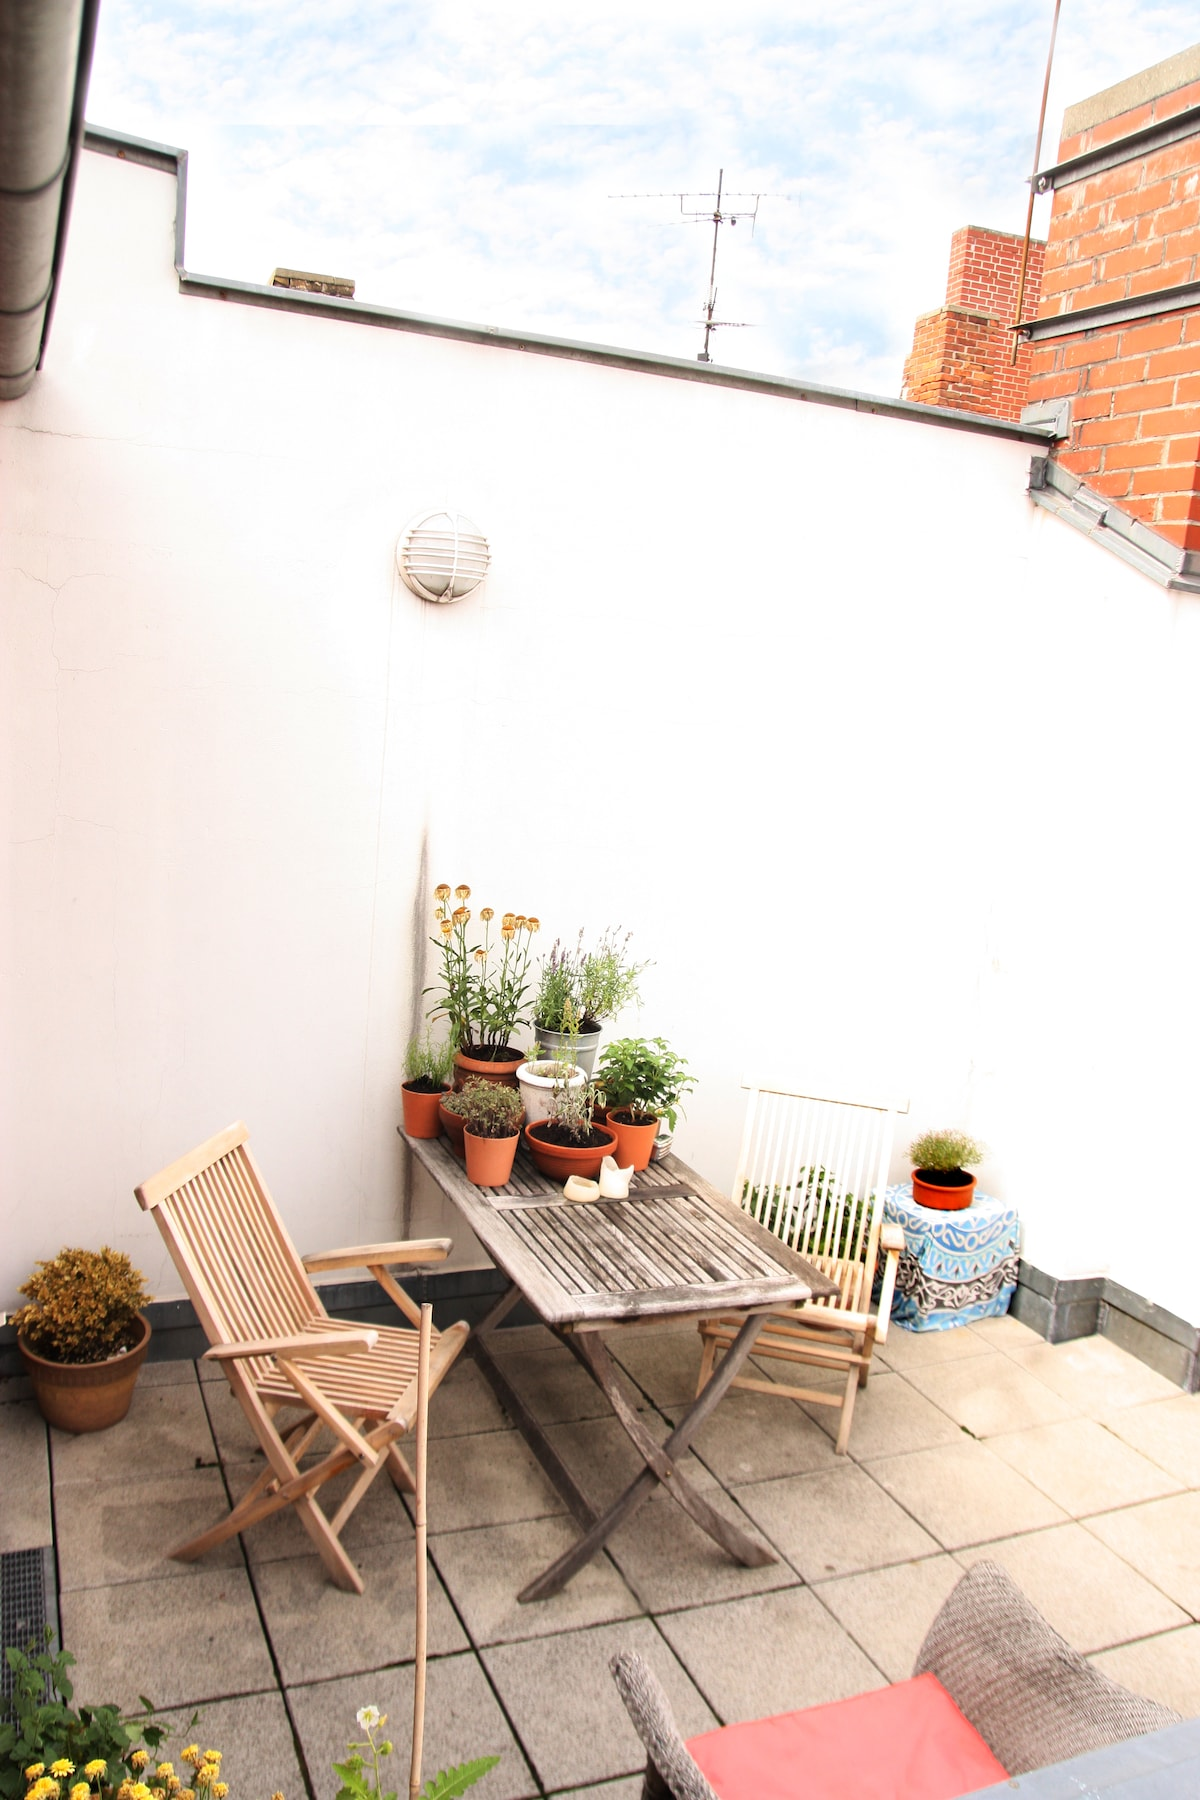 Sunny terrace appartment in Mitte